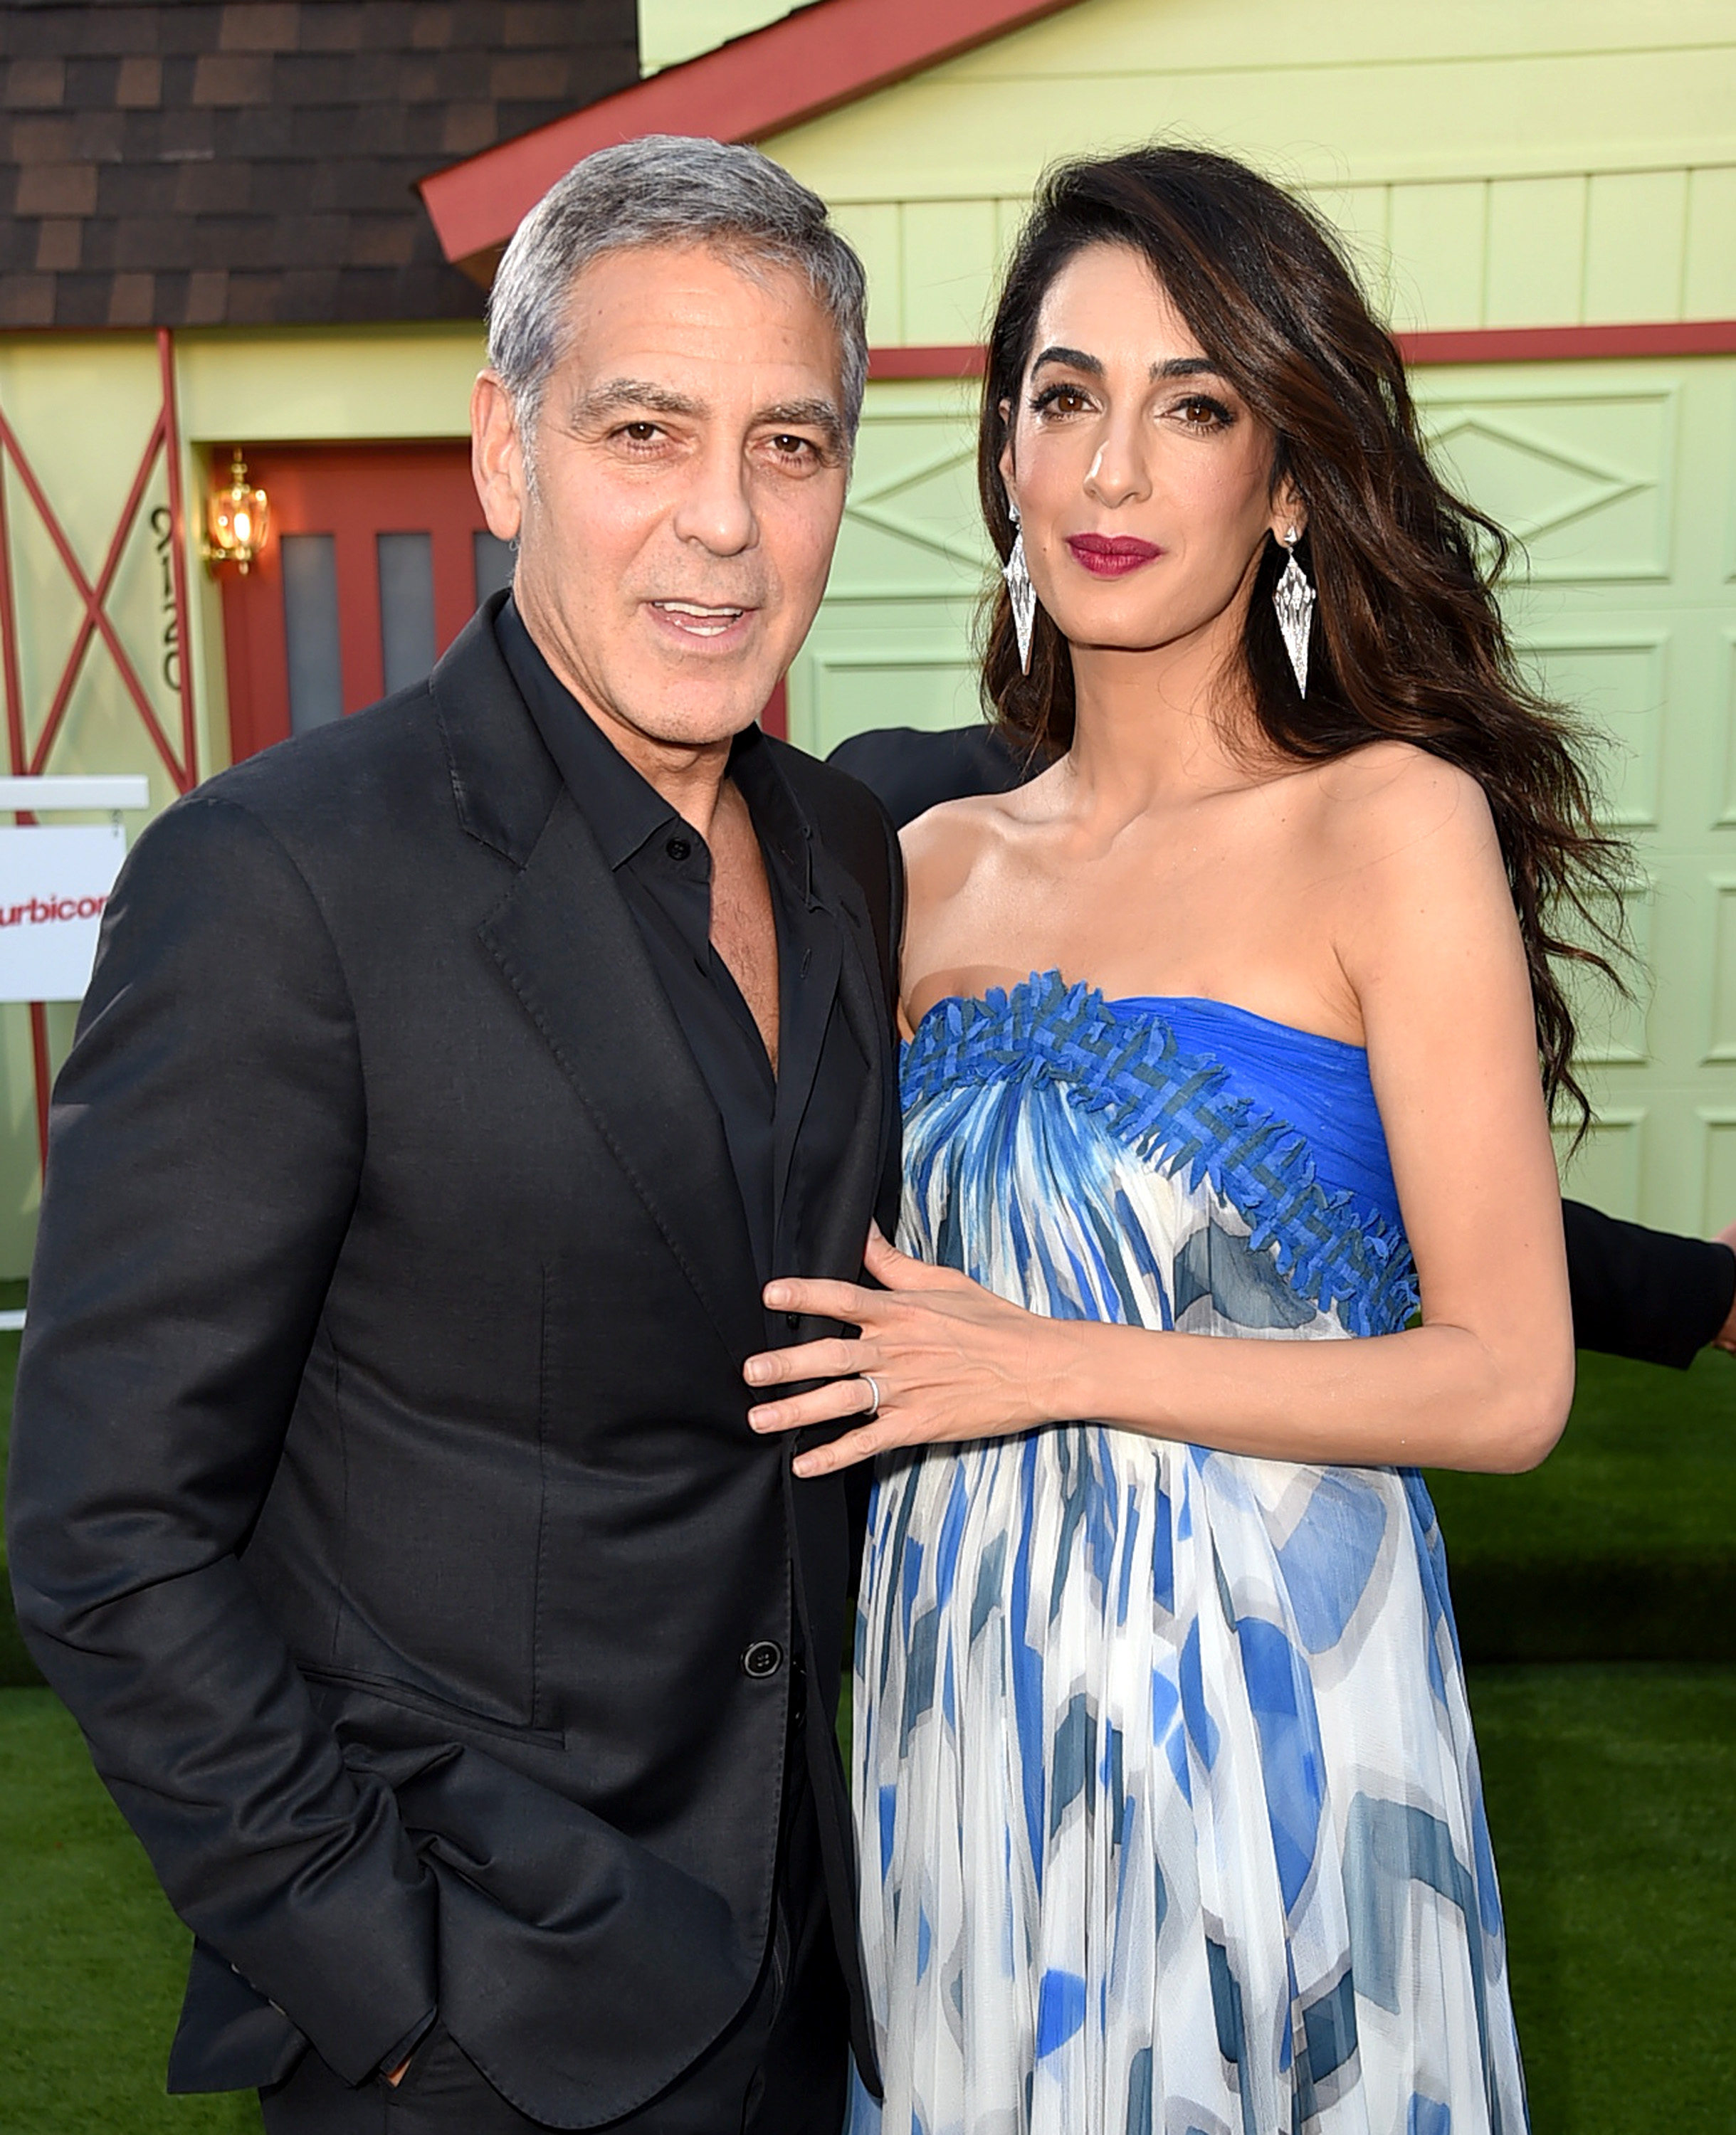 Executive producer/director George Clooney and his wife Amal Clooney arrive at the premiere of Paramount Pictures' 'Suburbicon' at the Village Theatre on October 22, 2017, in Los Angeles, California. (Getty Images)